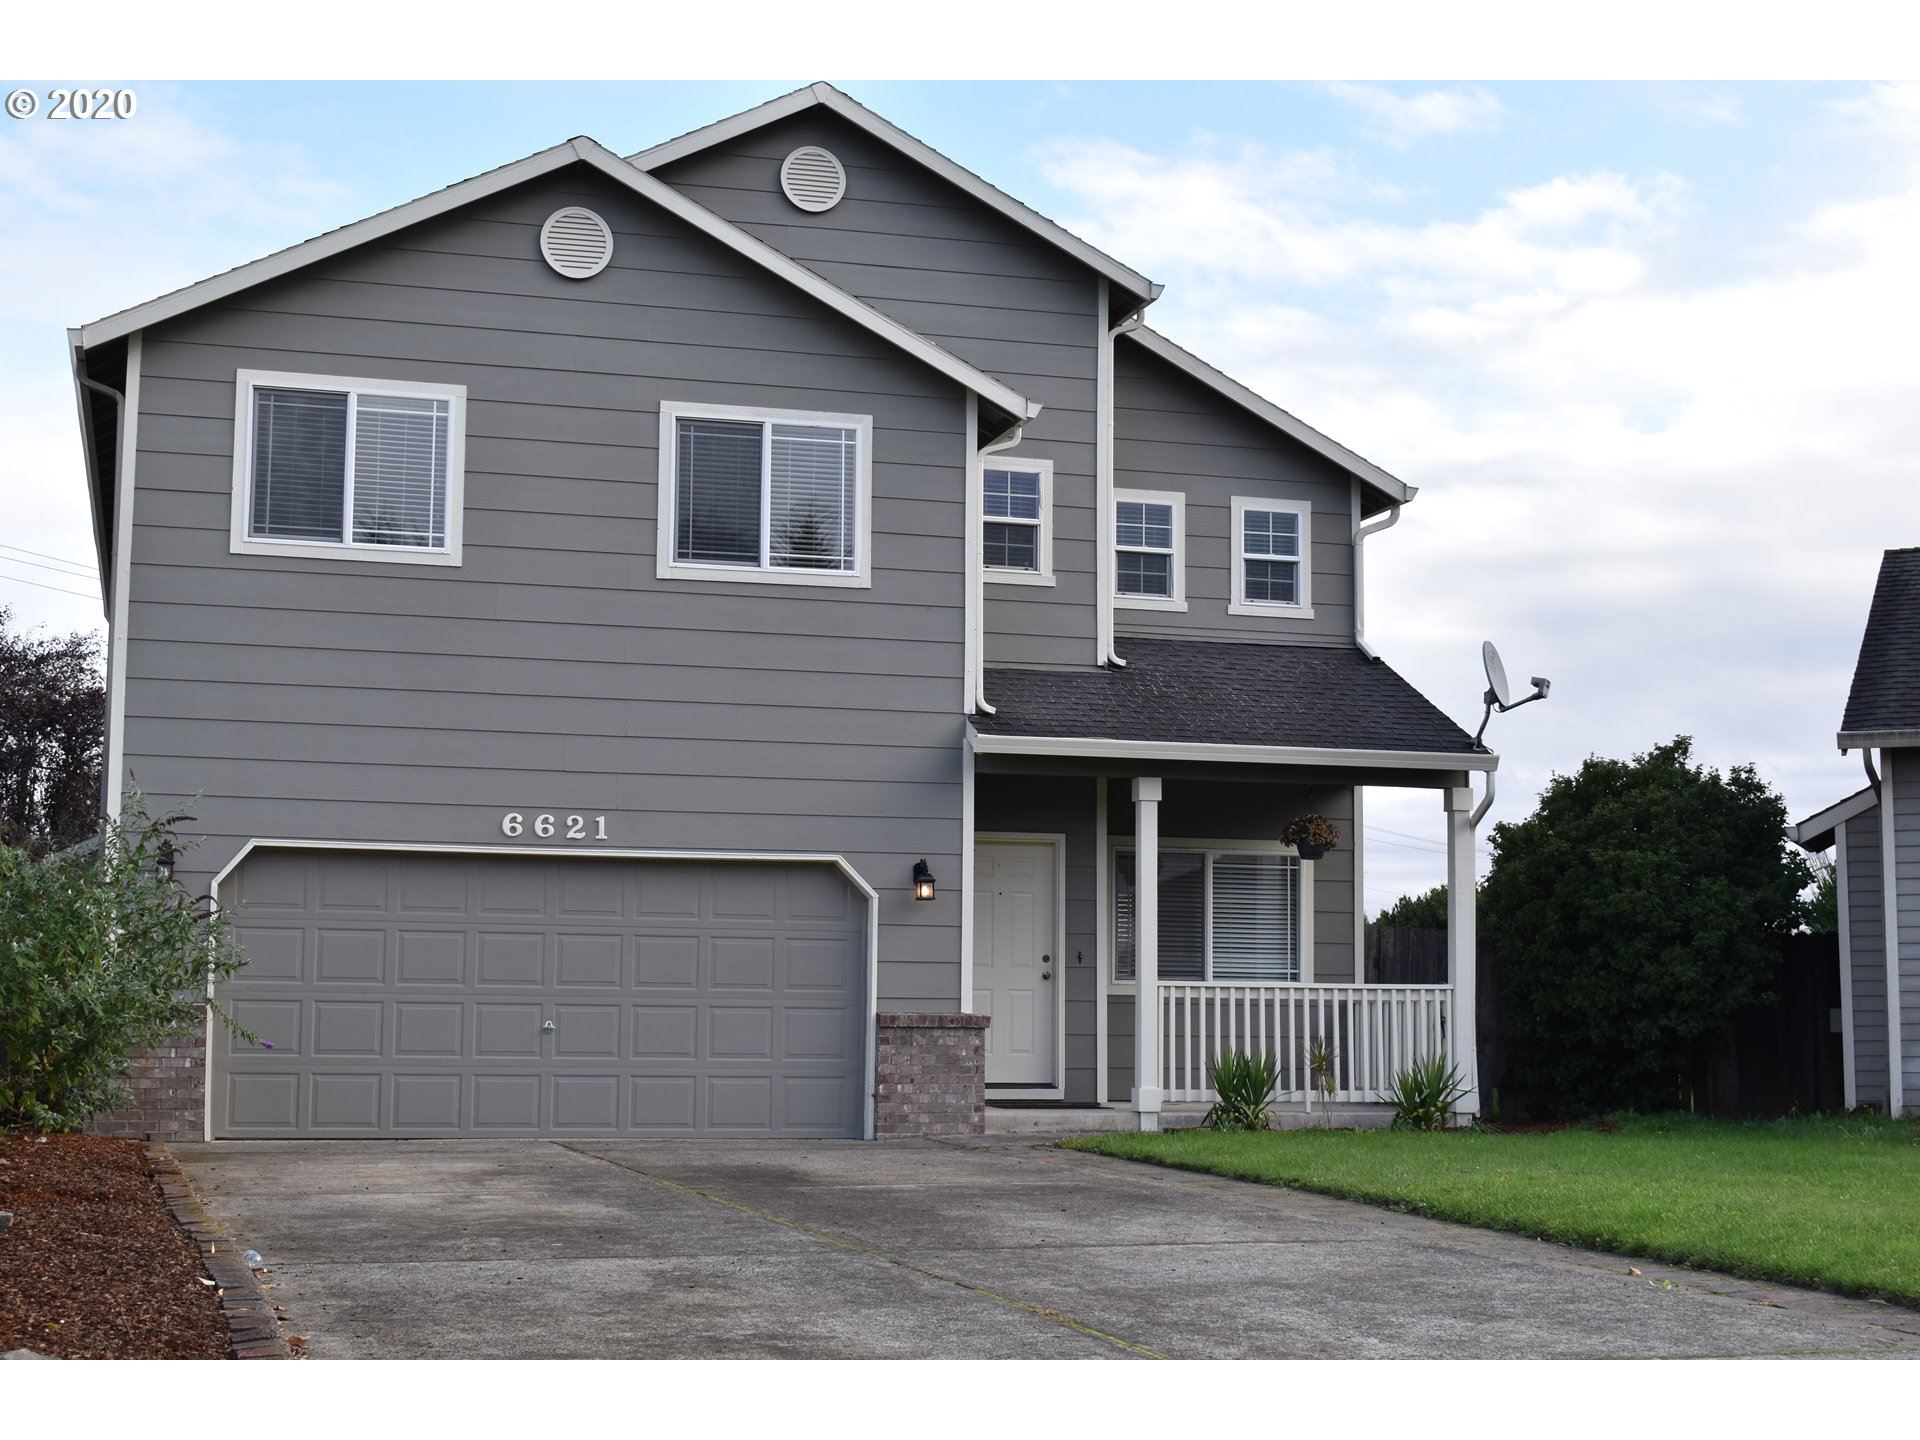 6621 NE 166TH AVE, Vancouver, WA 98682 - MLS#: 20036006